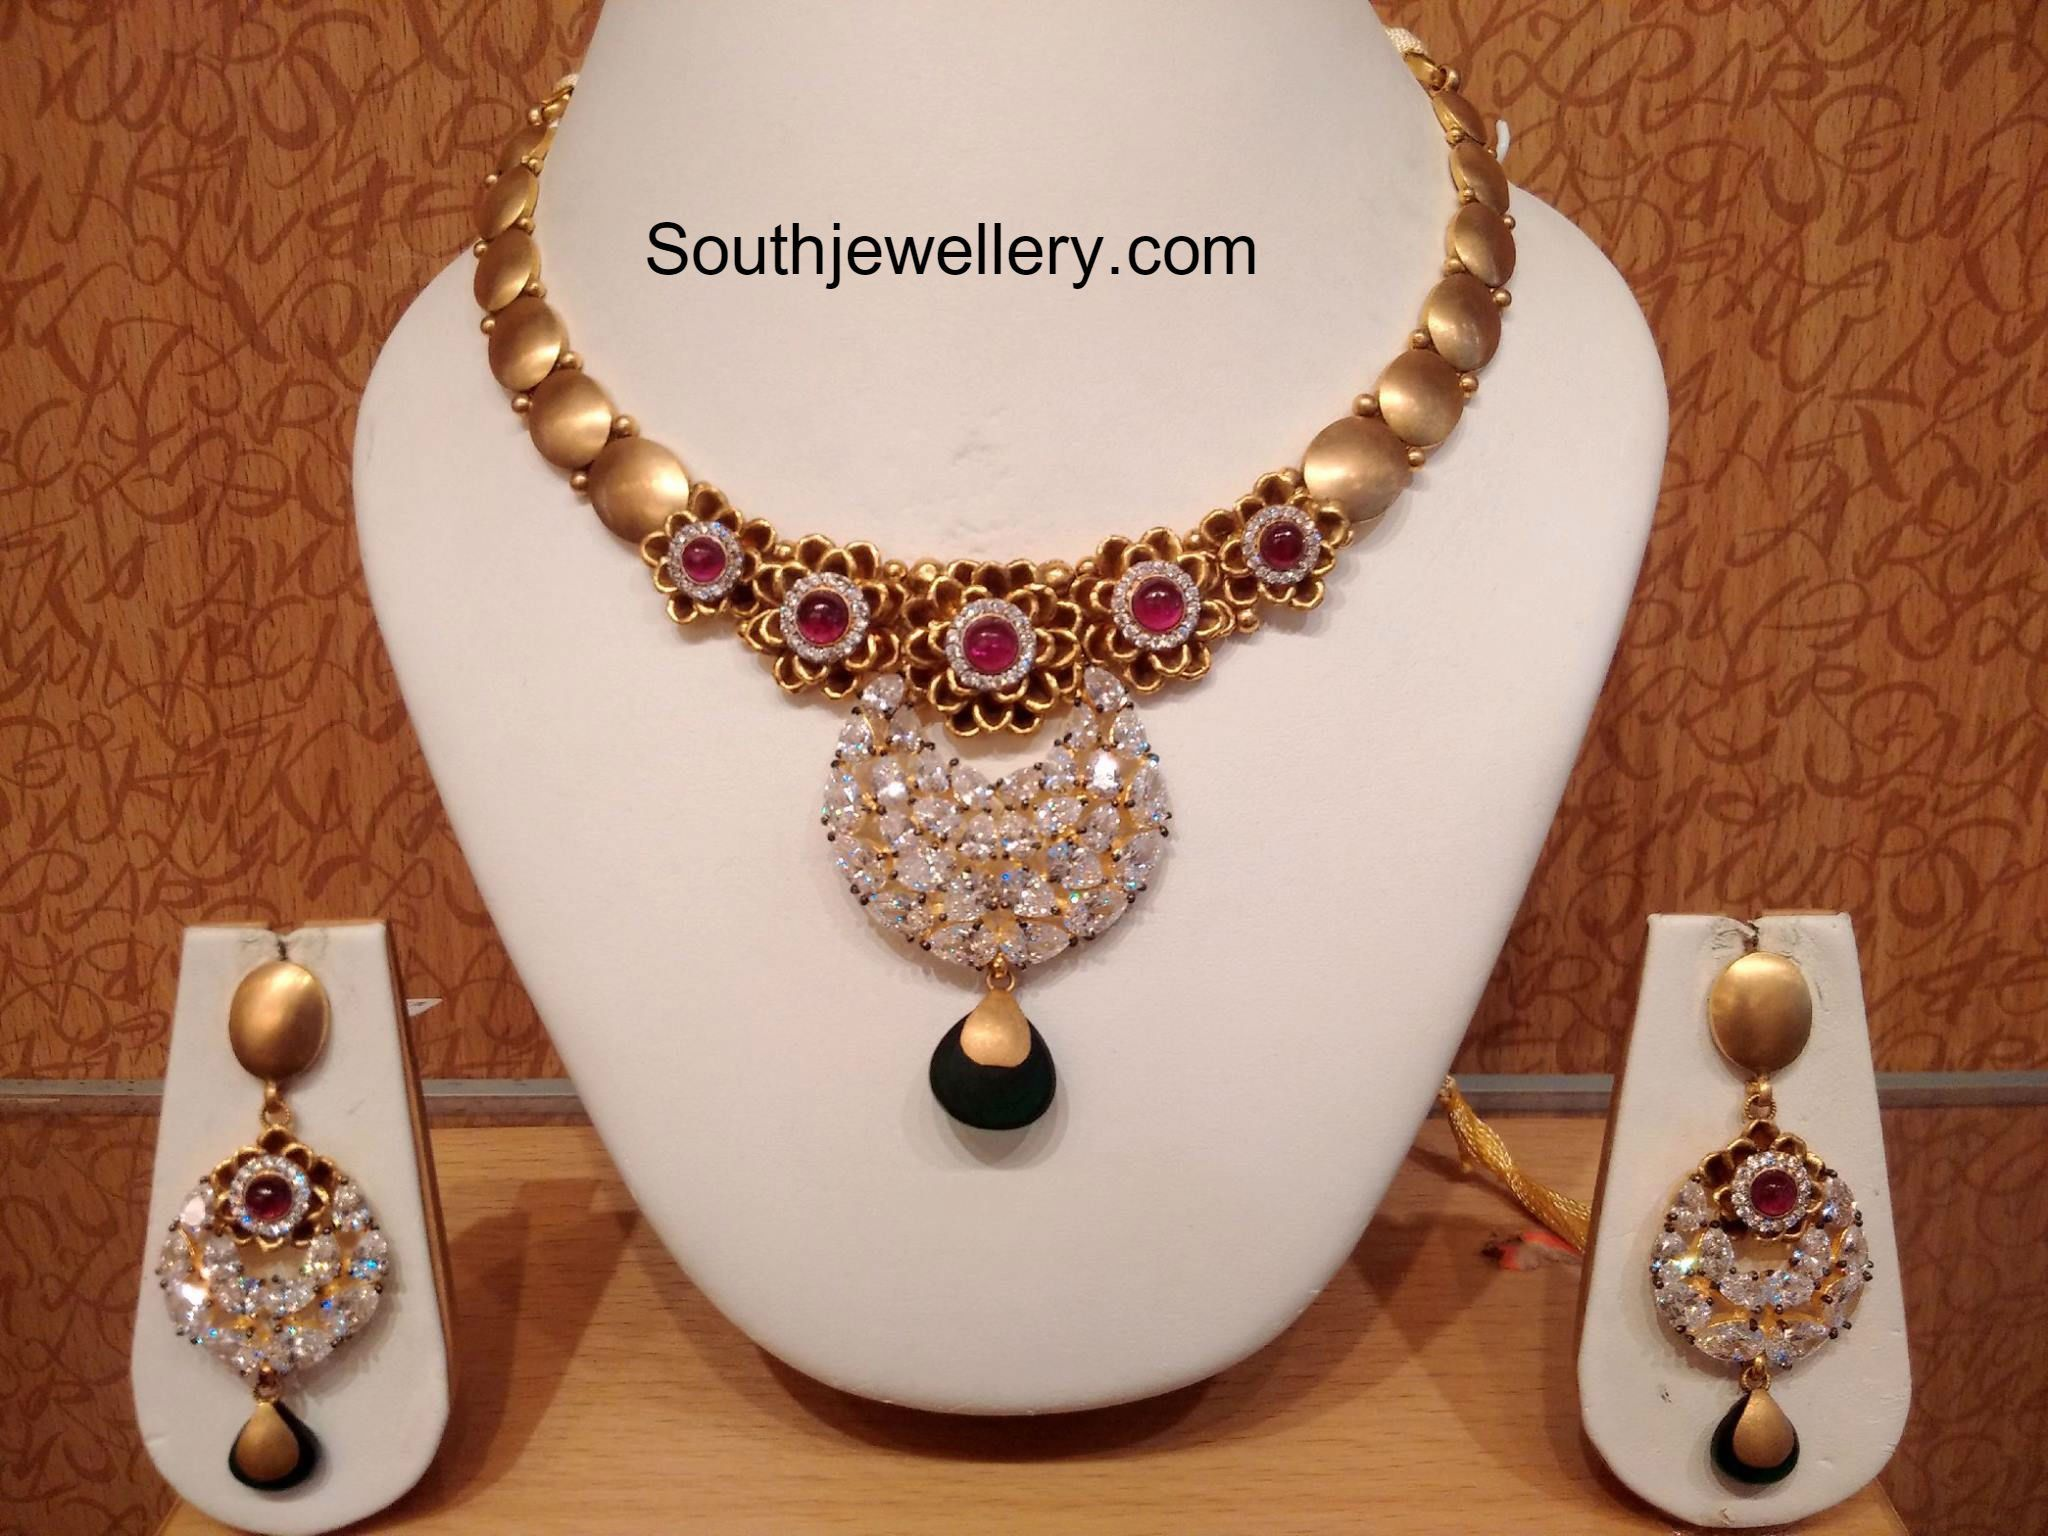 www.southjewellery.com wp-content uploads 2016 05 ...